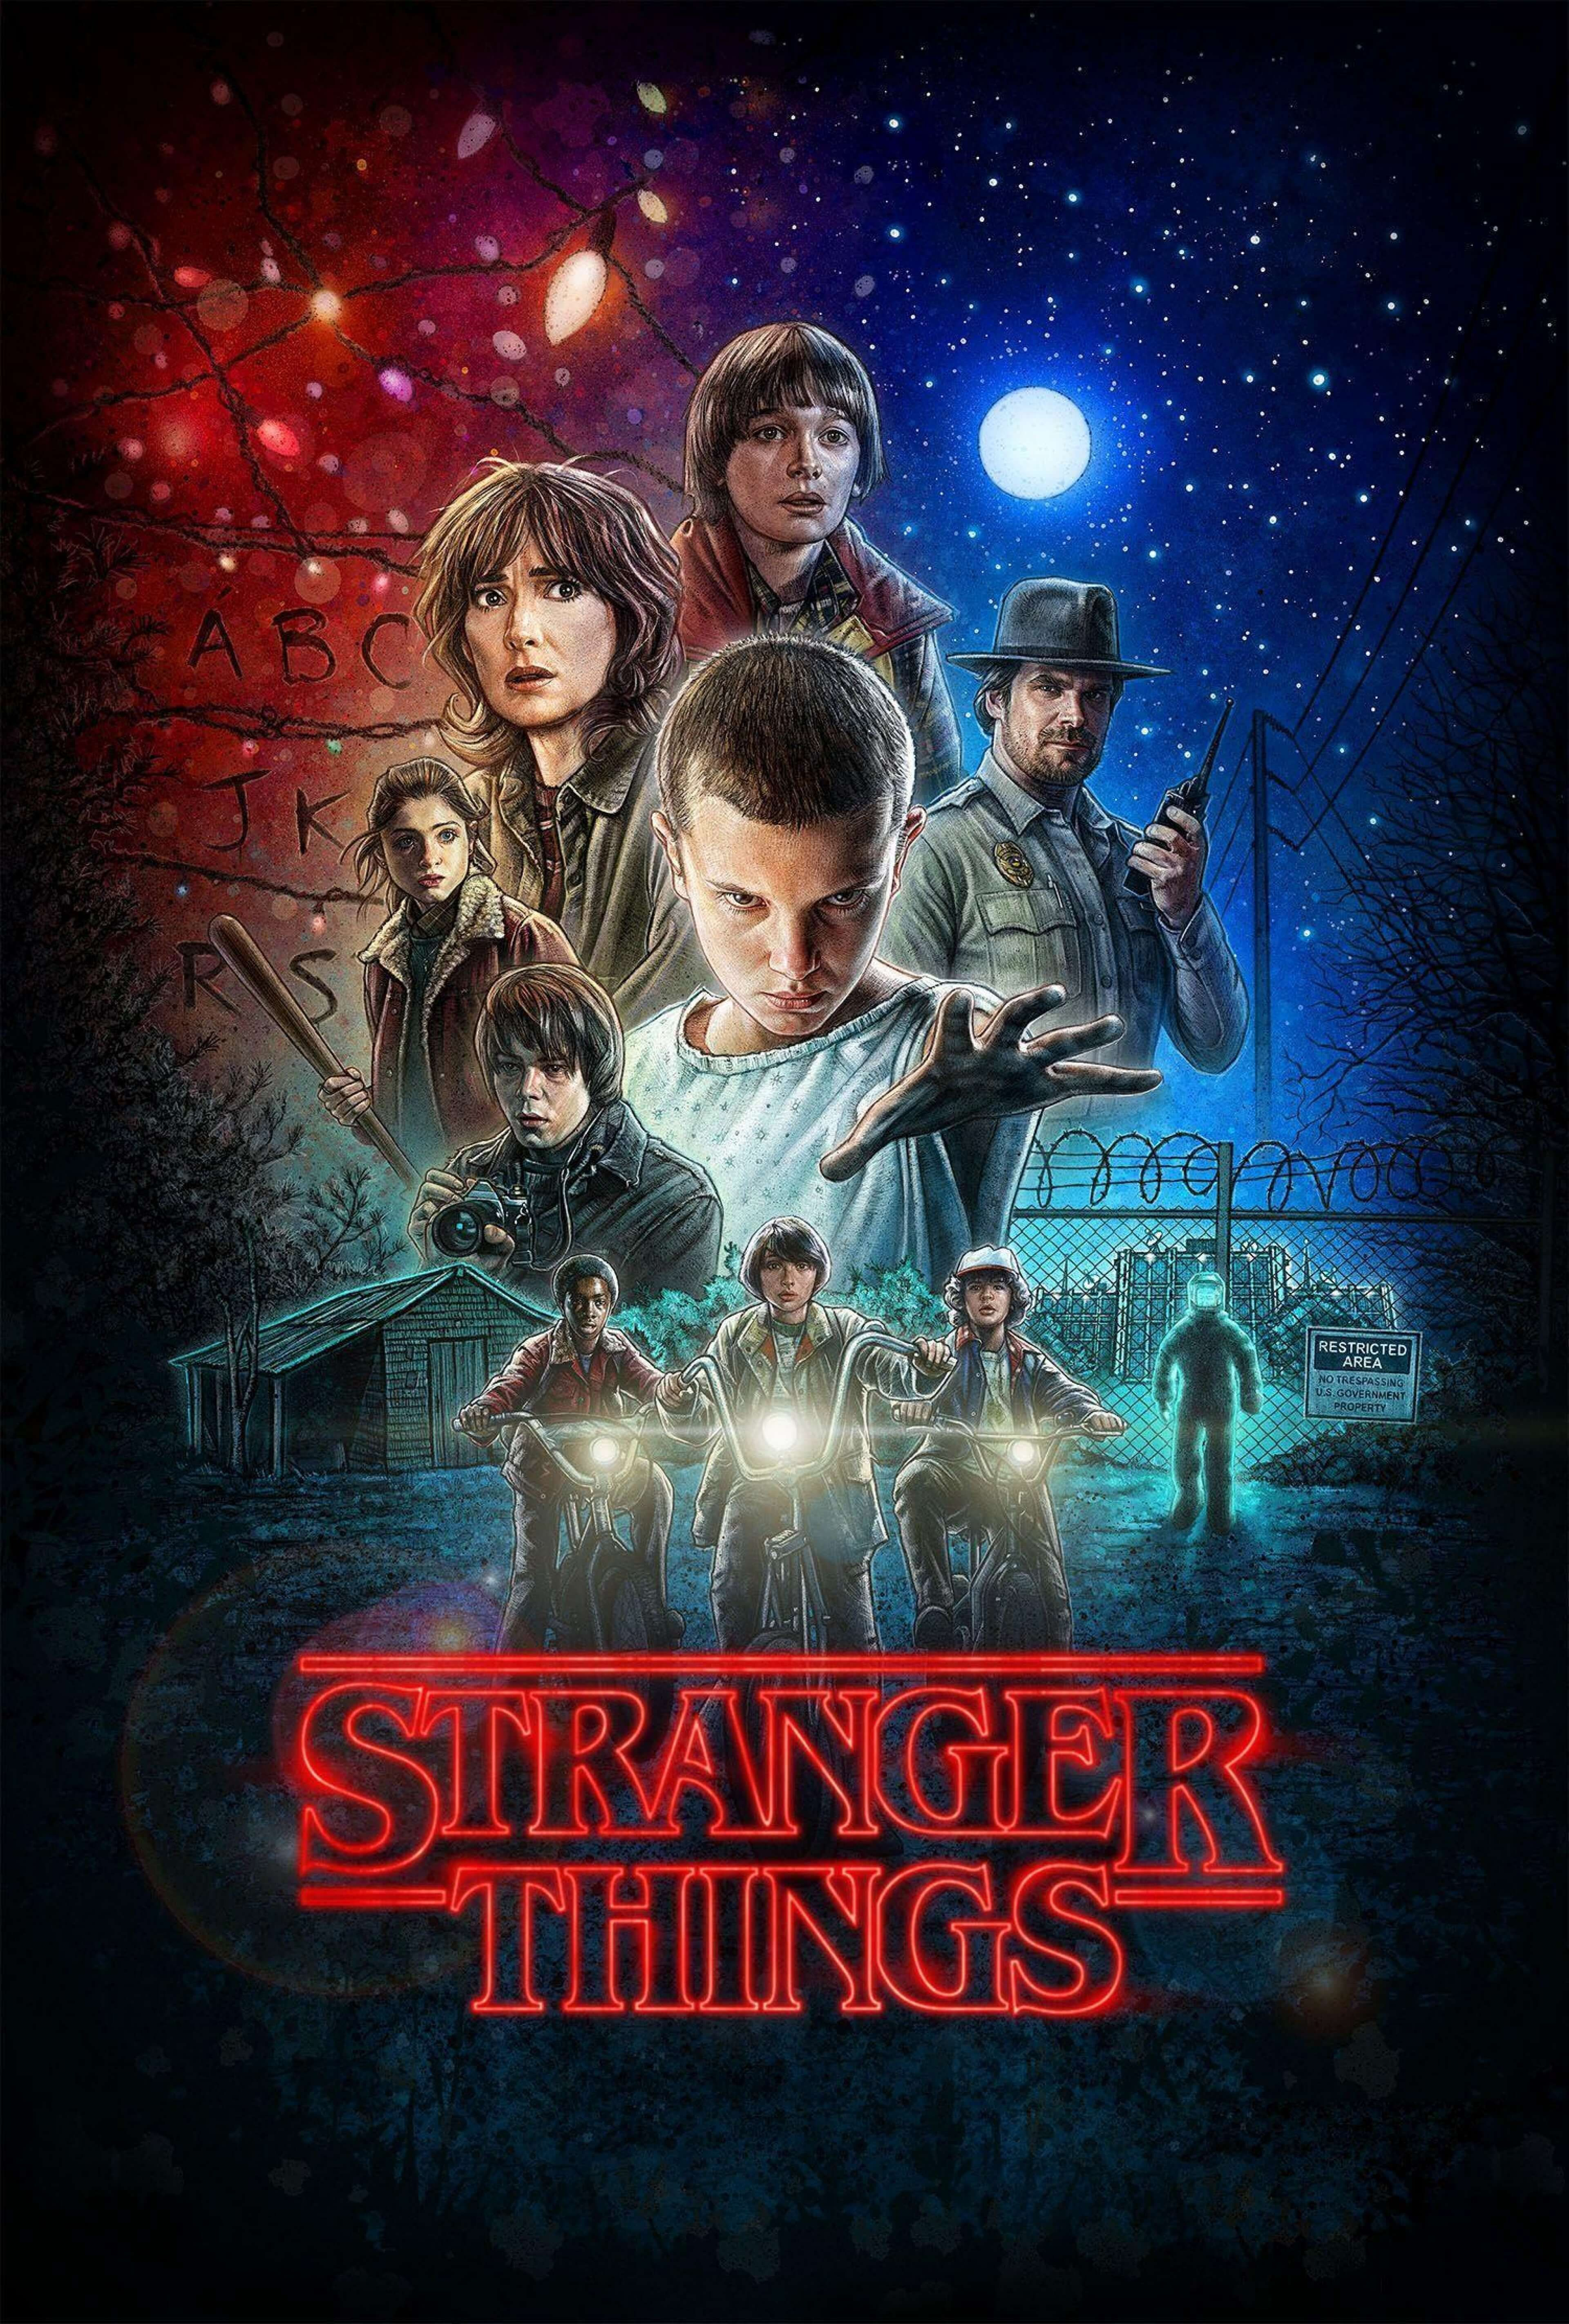 Best Stranger Things Wallpapers 4K HD Stranger things